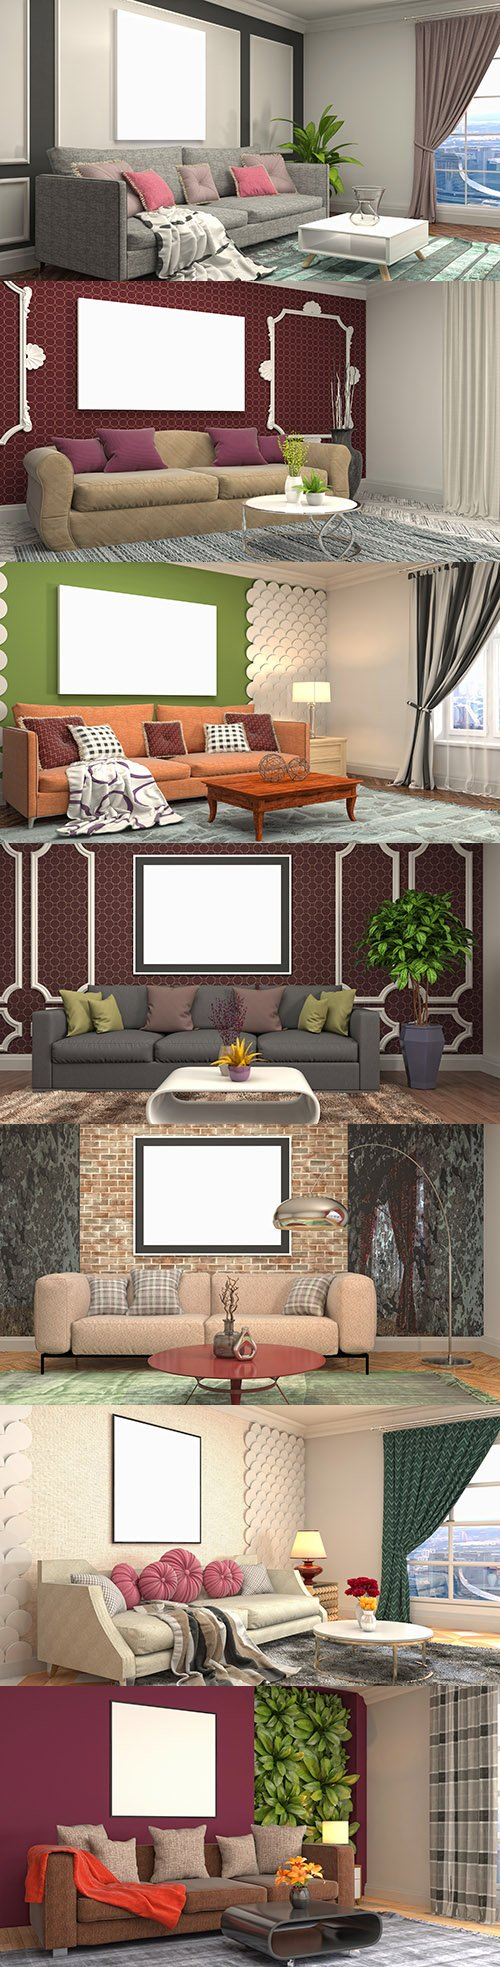 Interior design room with furniture and frame on wall